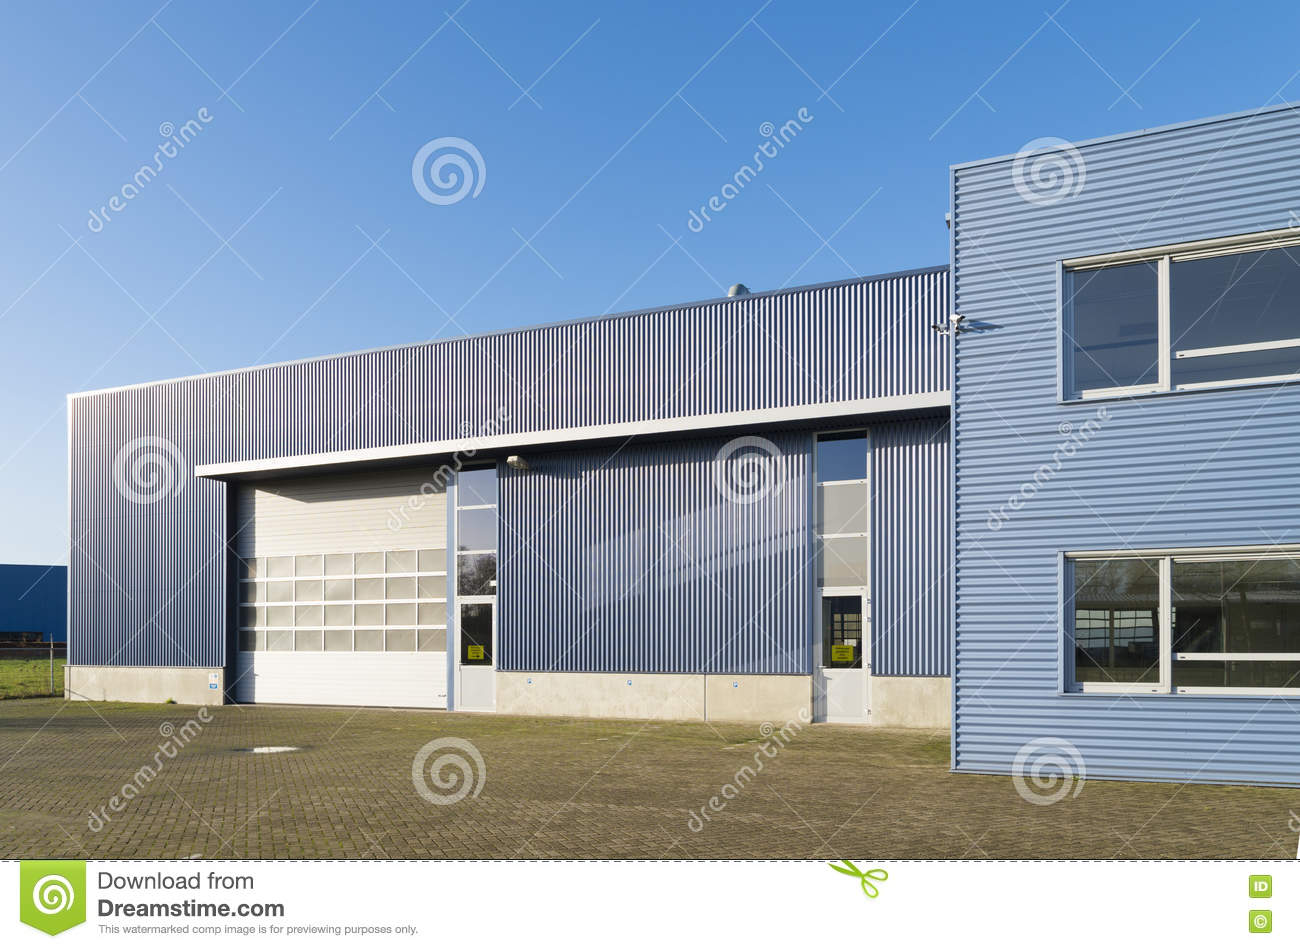 construction industrielle moderne photo stock - image du compagnie